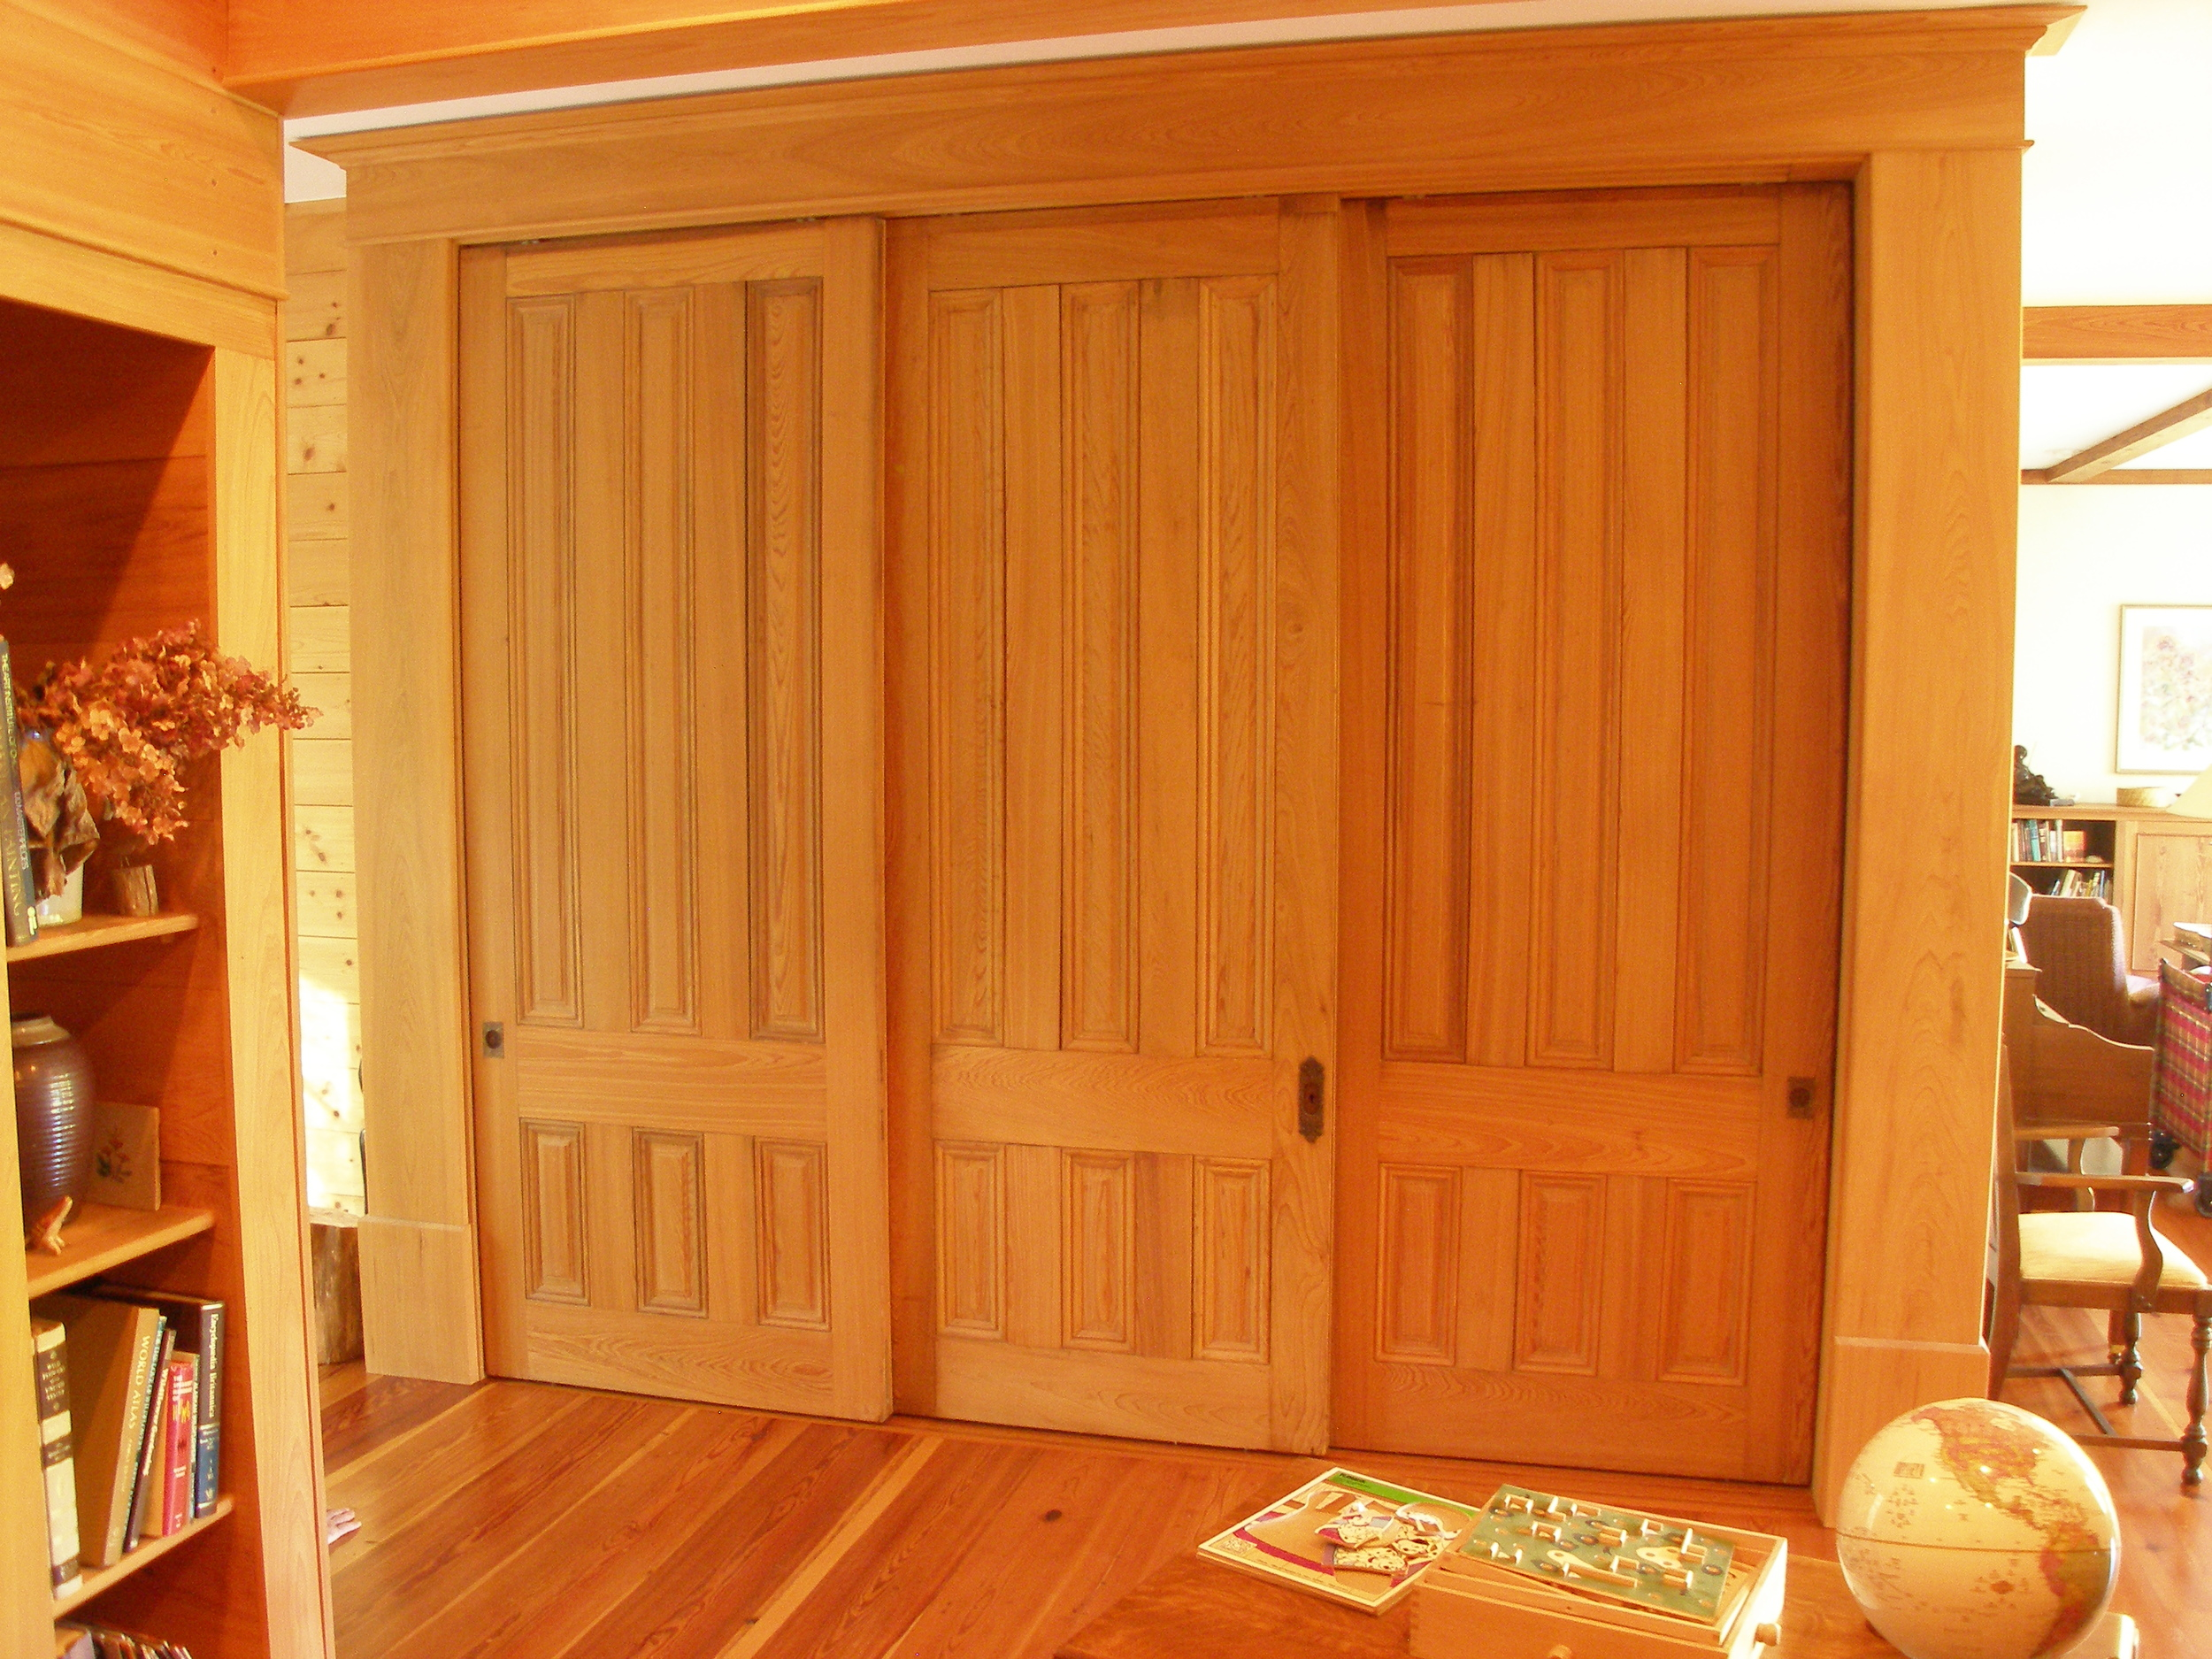 Sliding recycled, cypress doors in closed position.